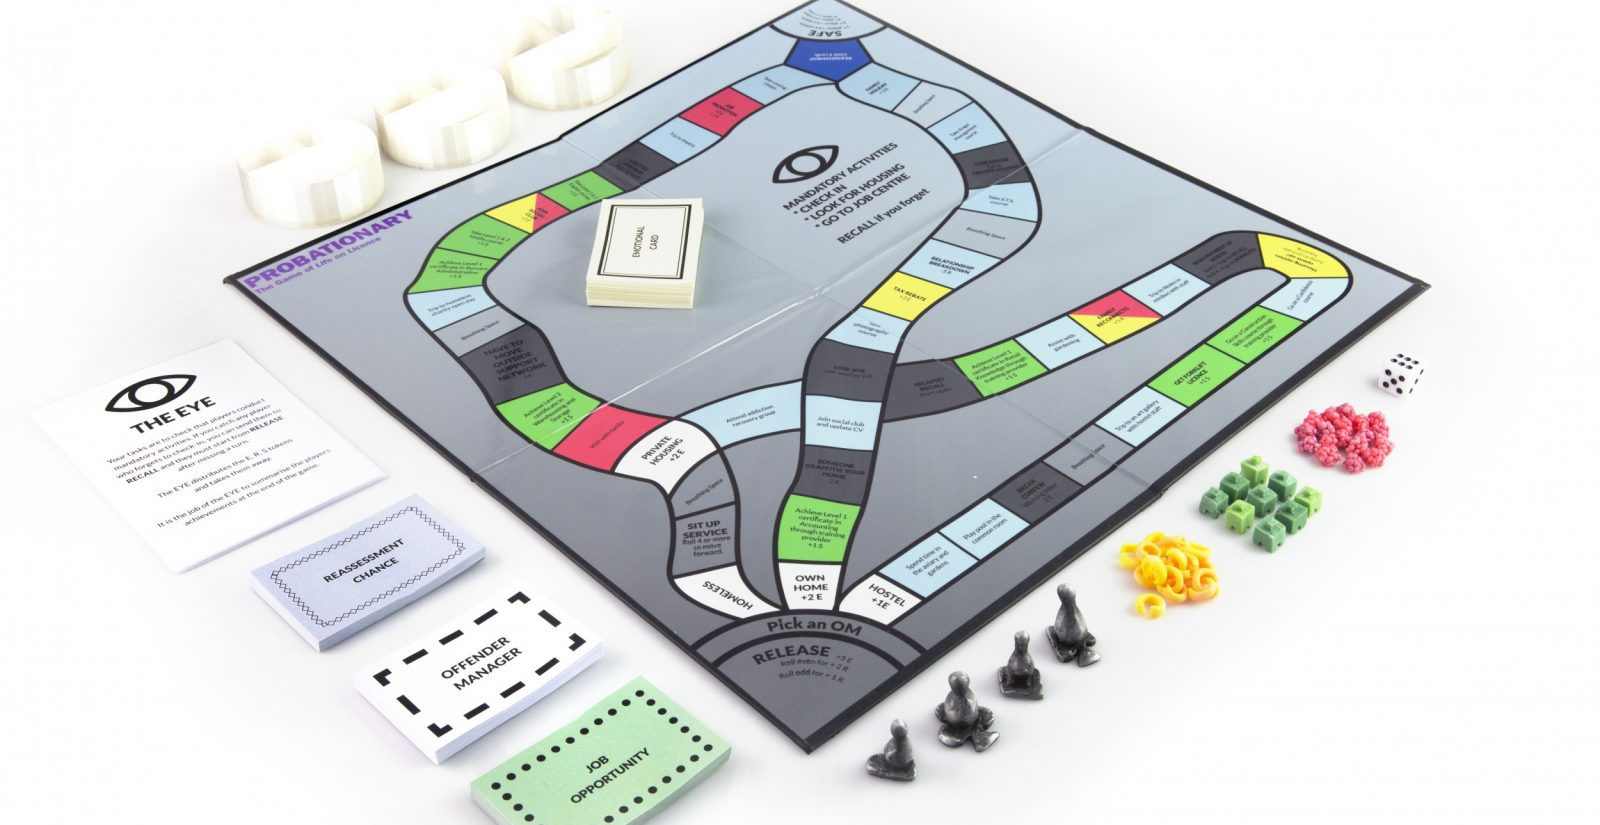 Probationary: The Game of Life on Licence